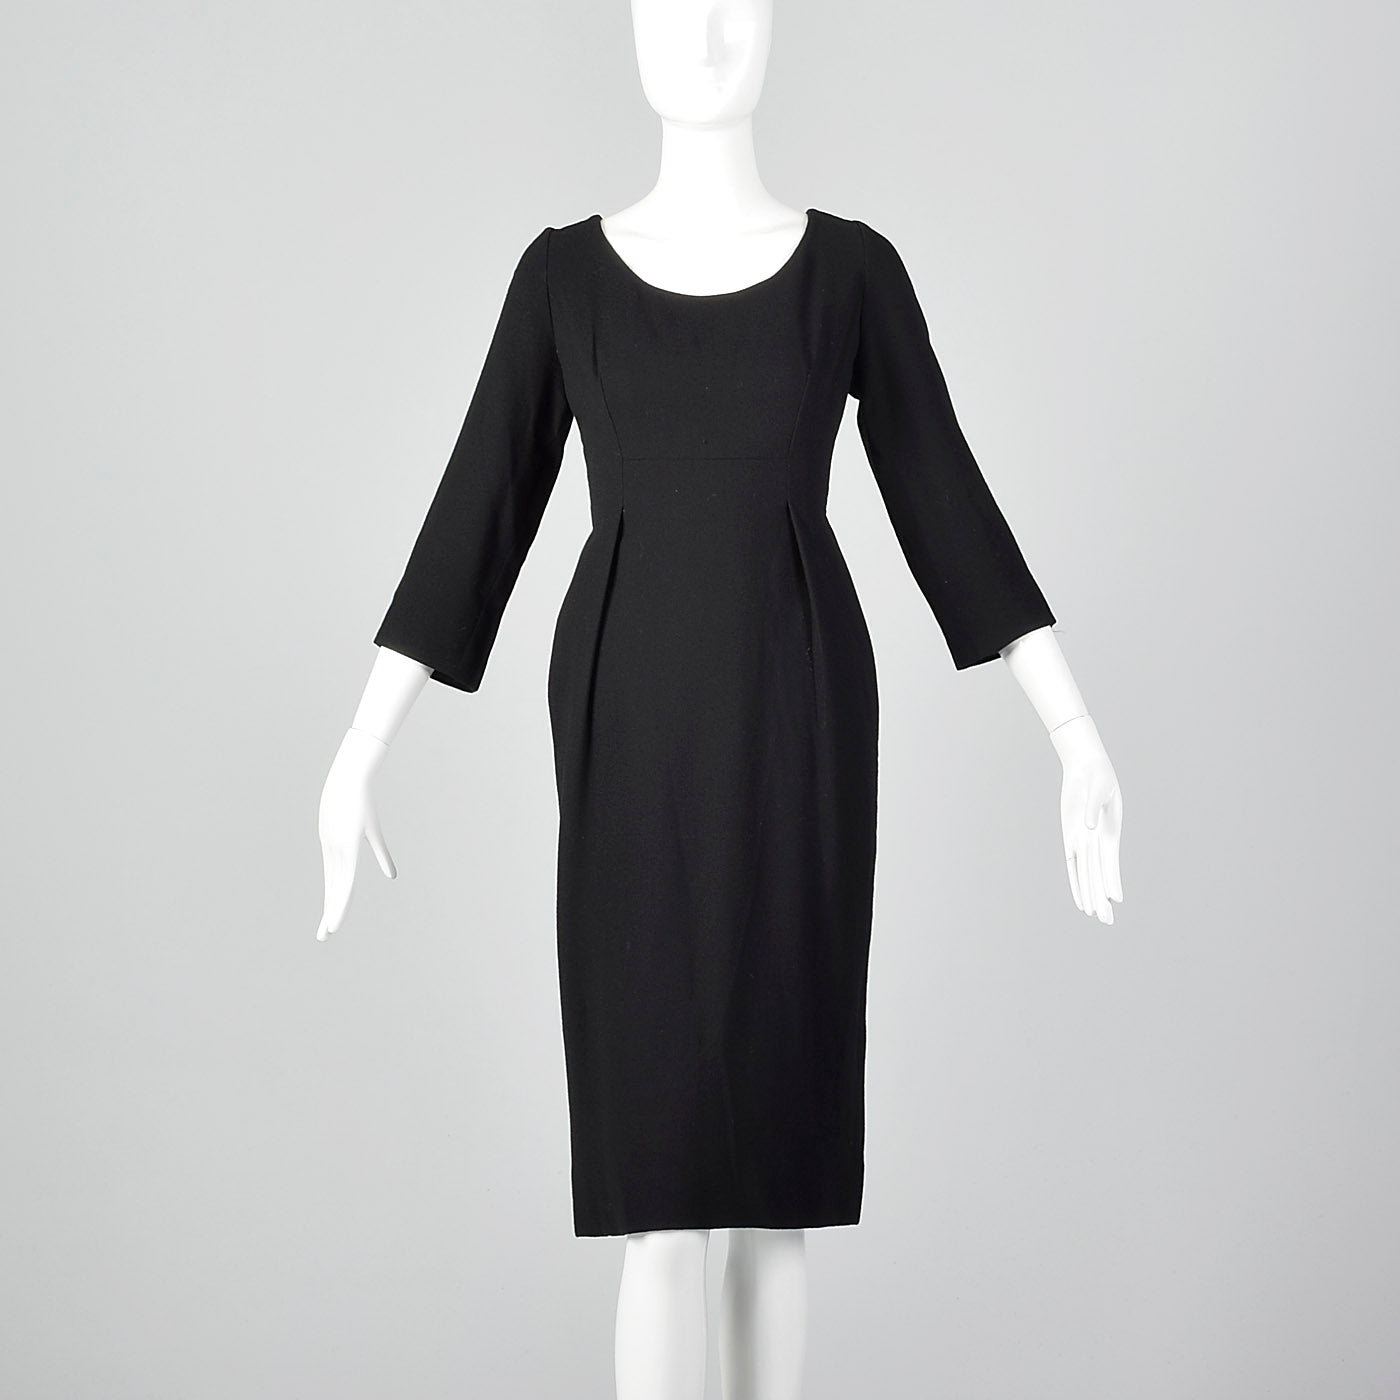 1970s Geoffrey Beene Black Pencil Dress